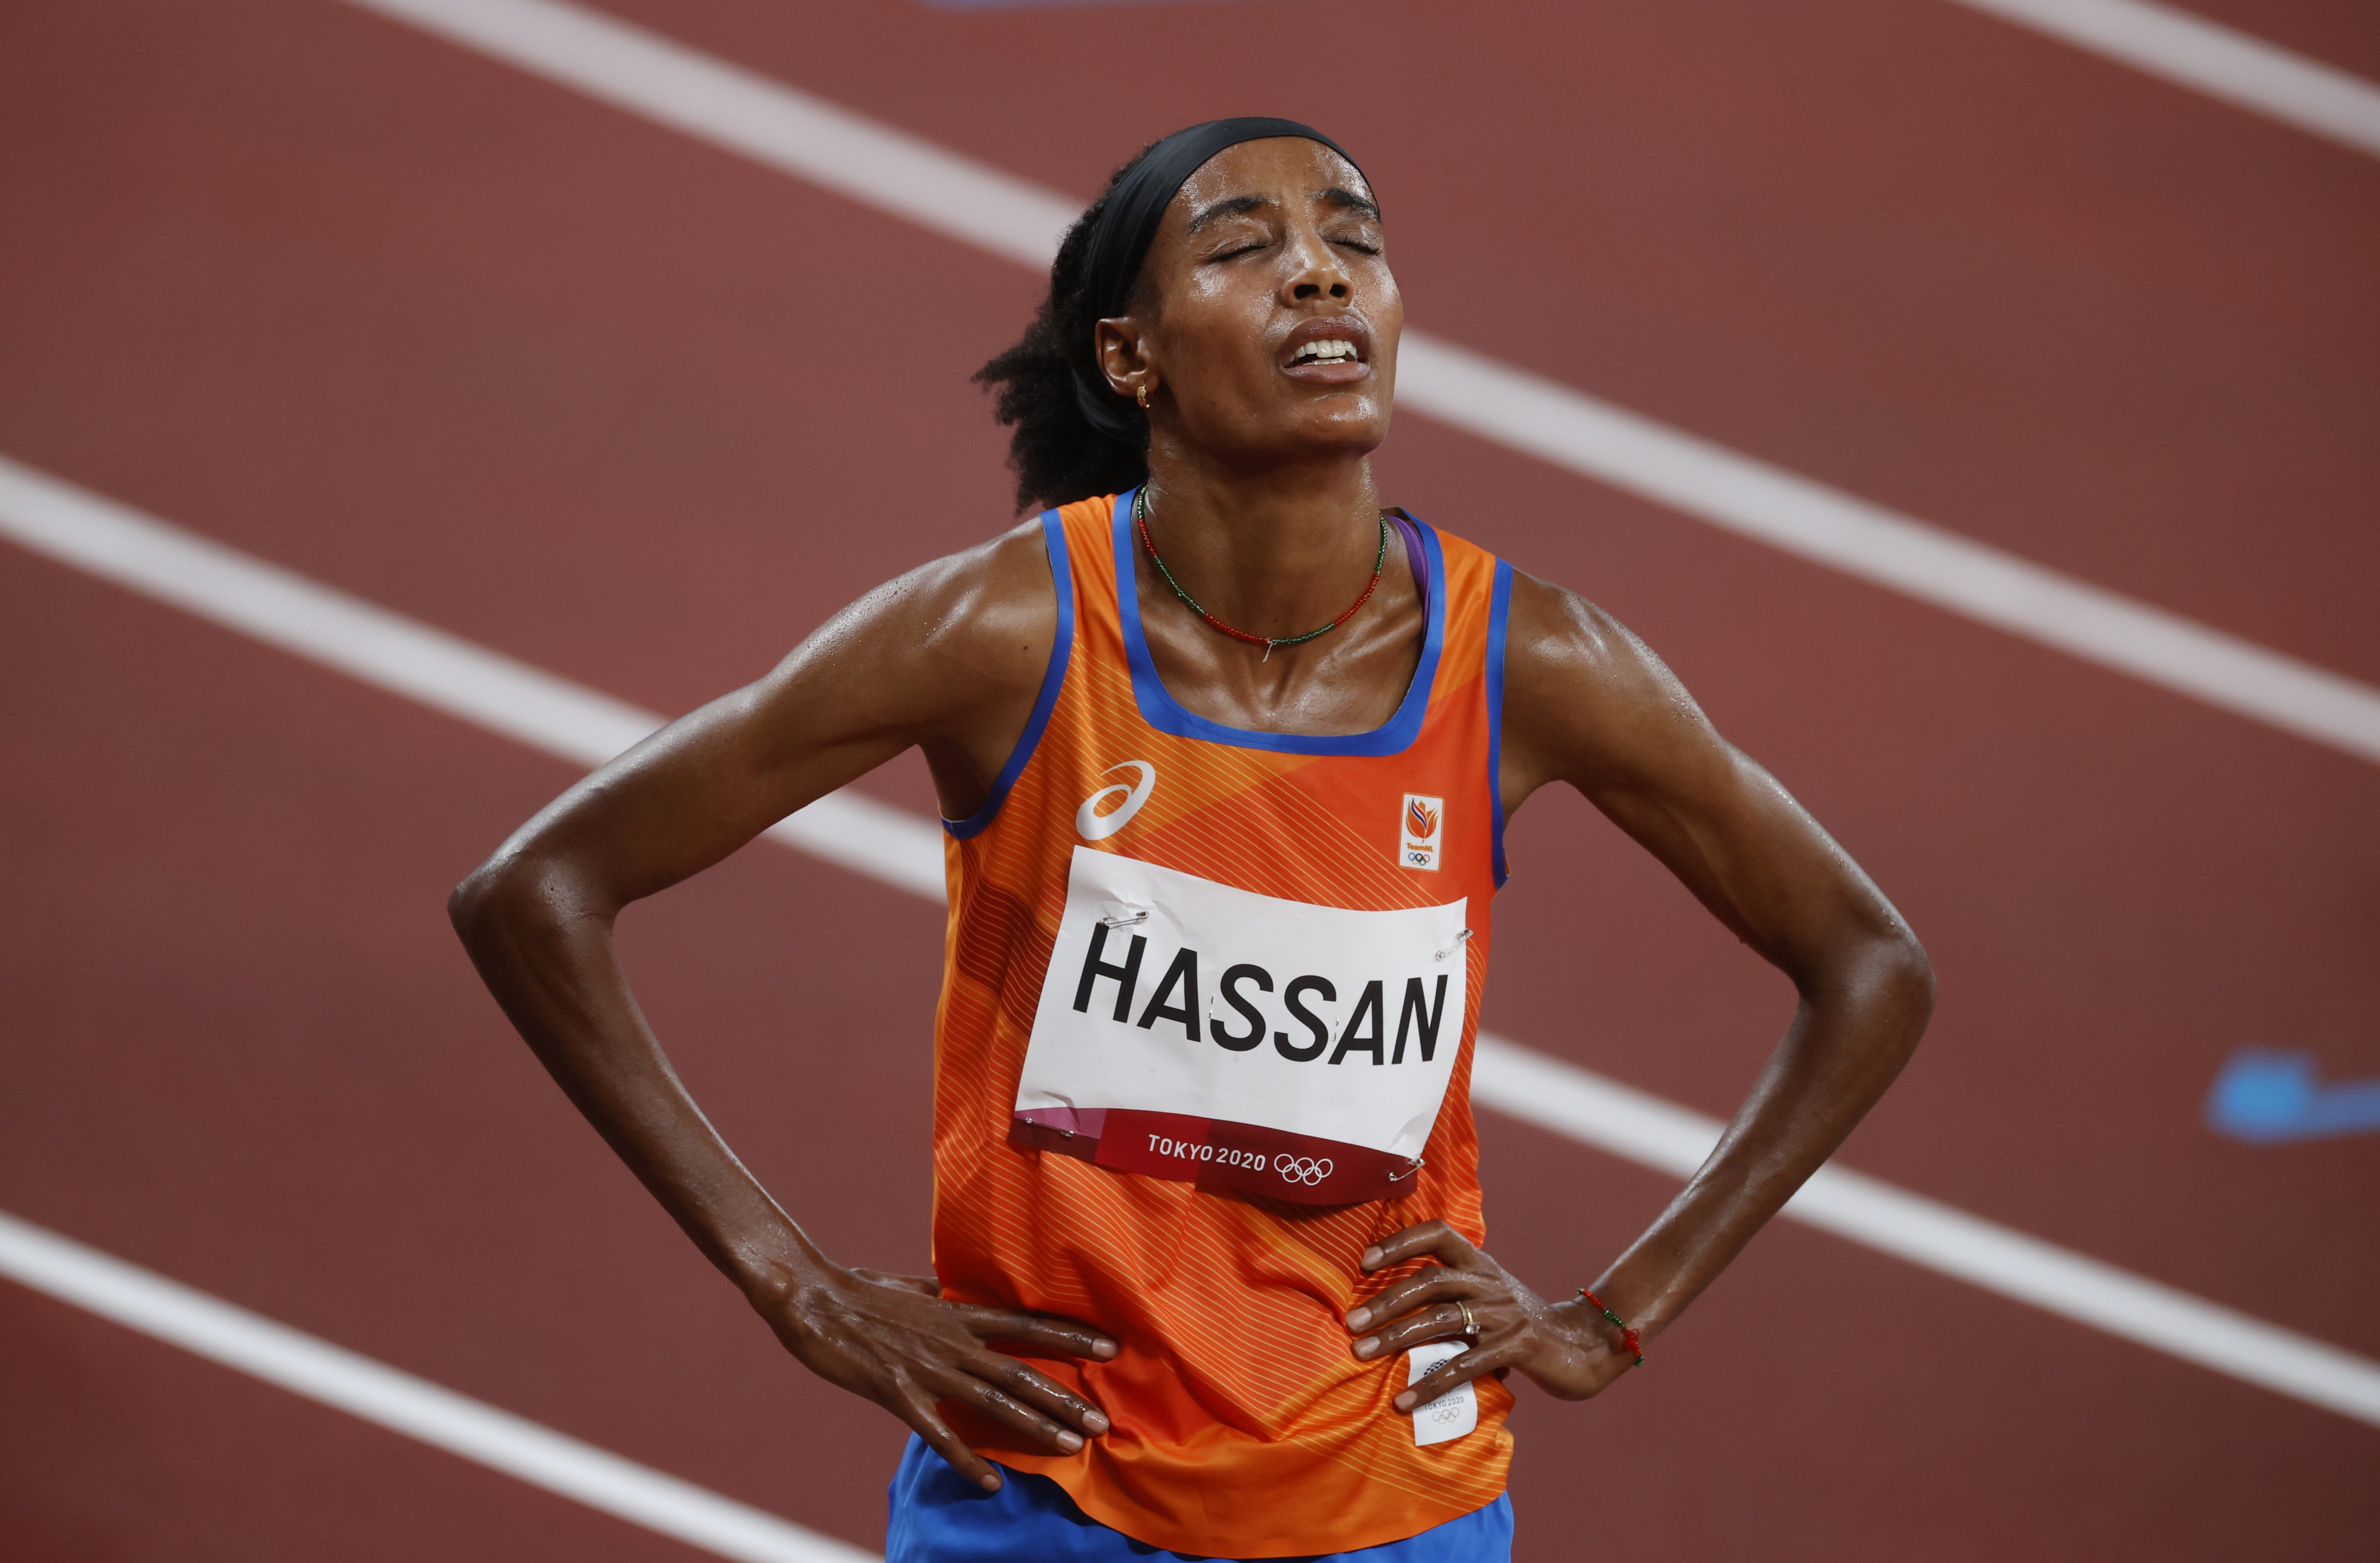 Tokyo 2020 Olympics - Athletics - Women's 5000m - Round 1 - OLS - Olympic Stadium, Tokyo, Japan - July 30, 2021. Sifan Hassan of the Netherlands reacts REUTERS/Phil Noble